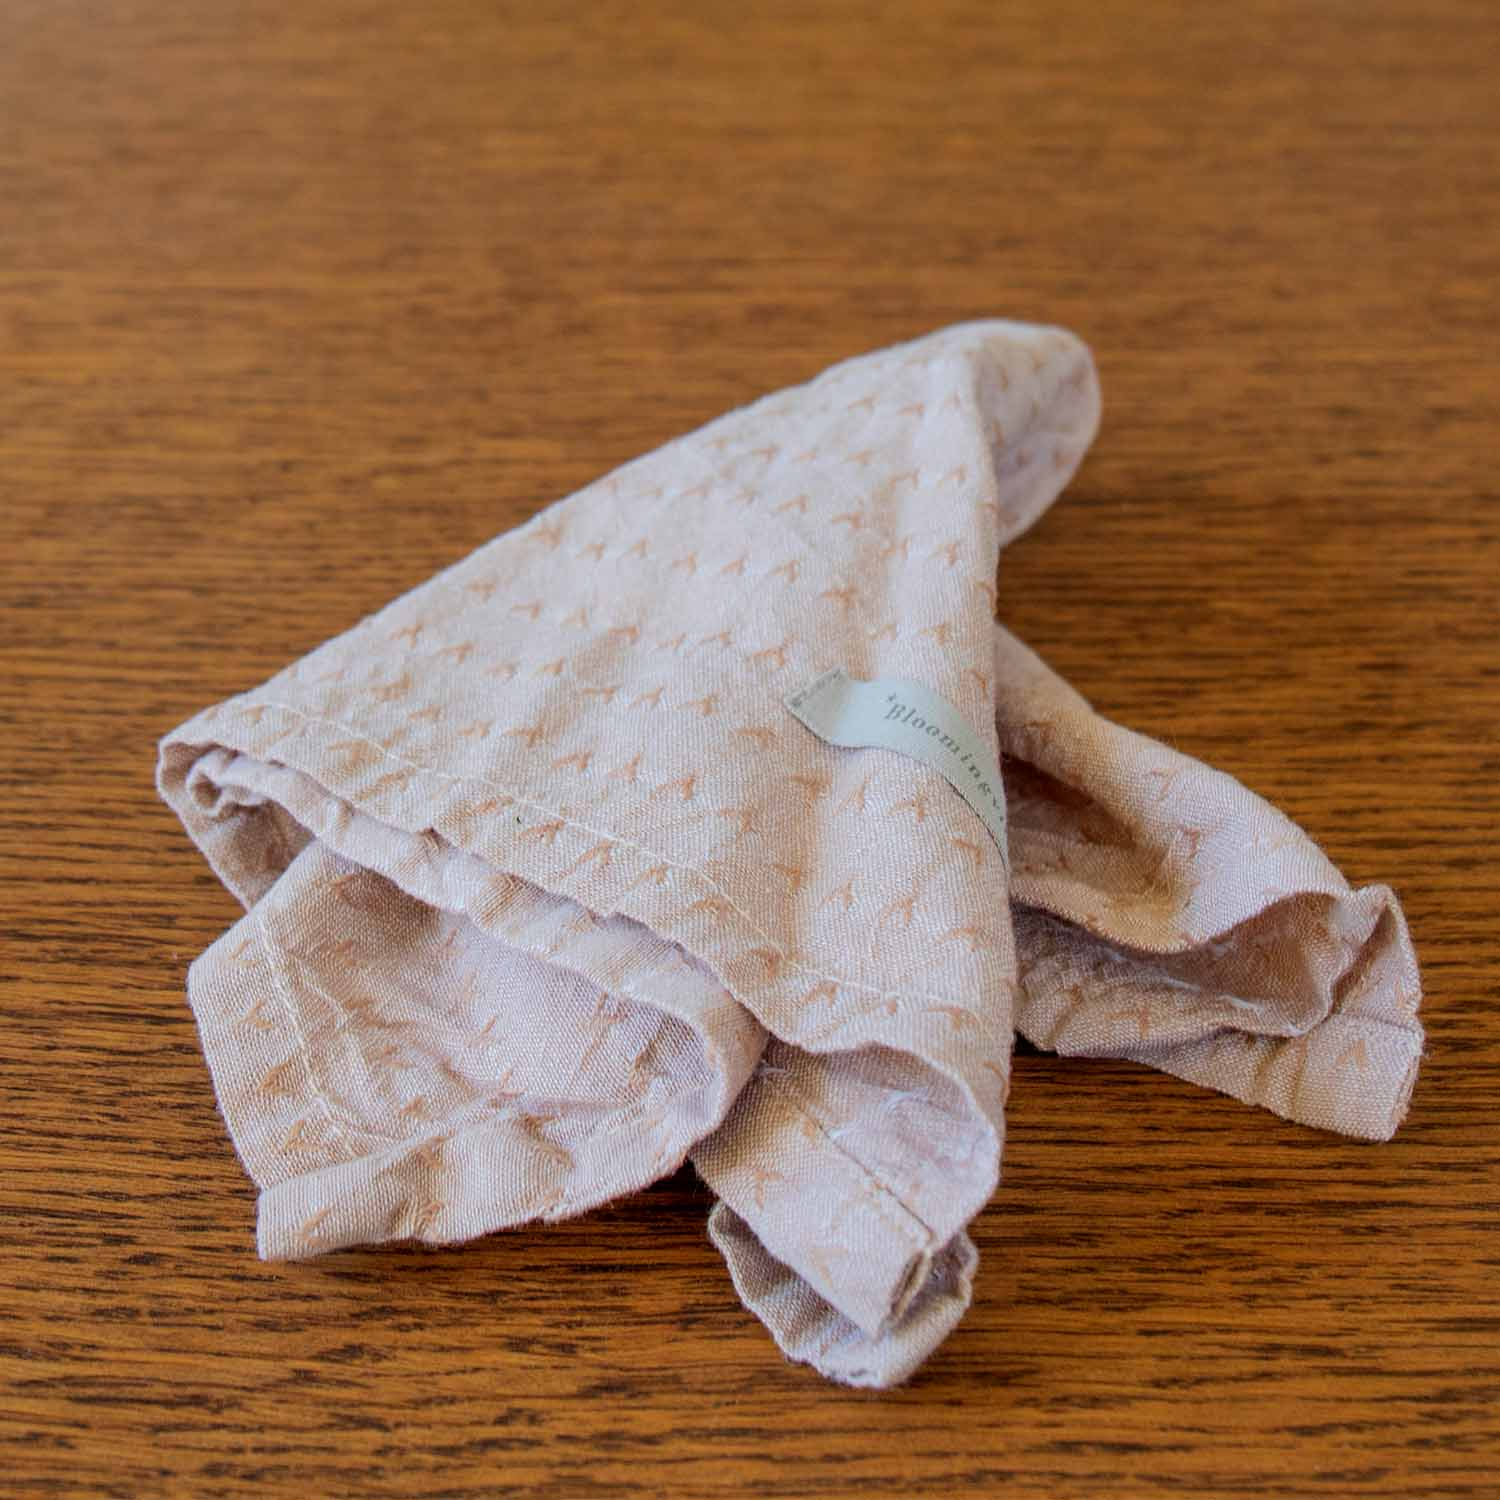 Napkin brown cotton @packet with 4 napkins